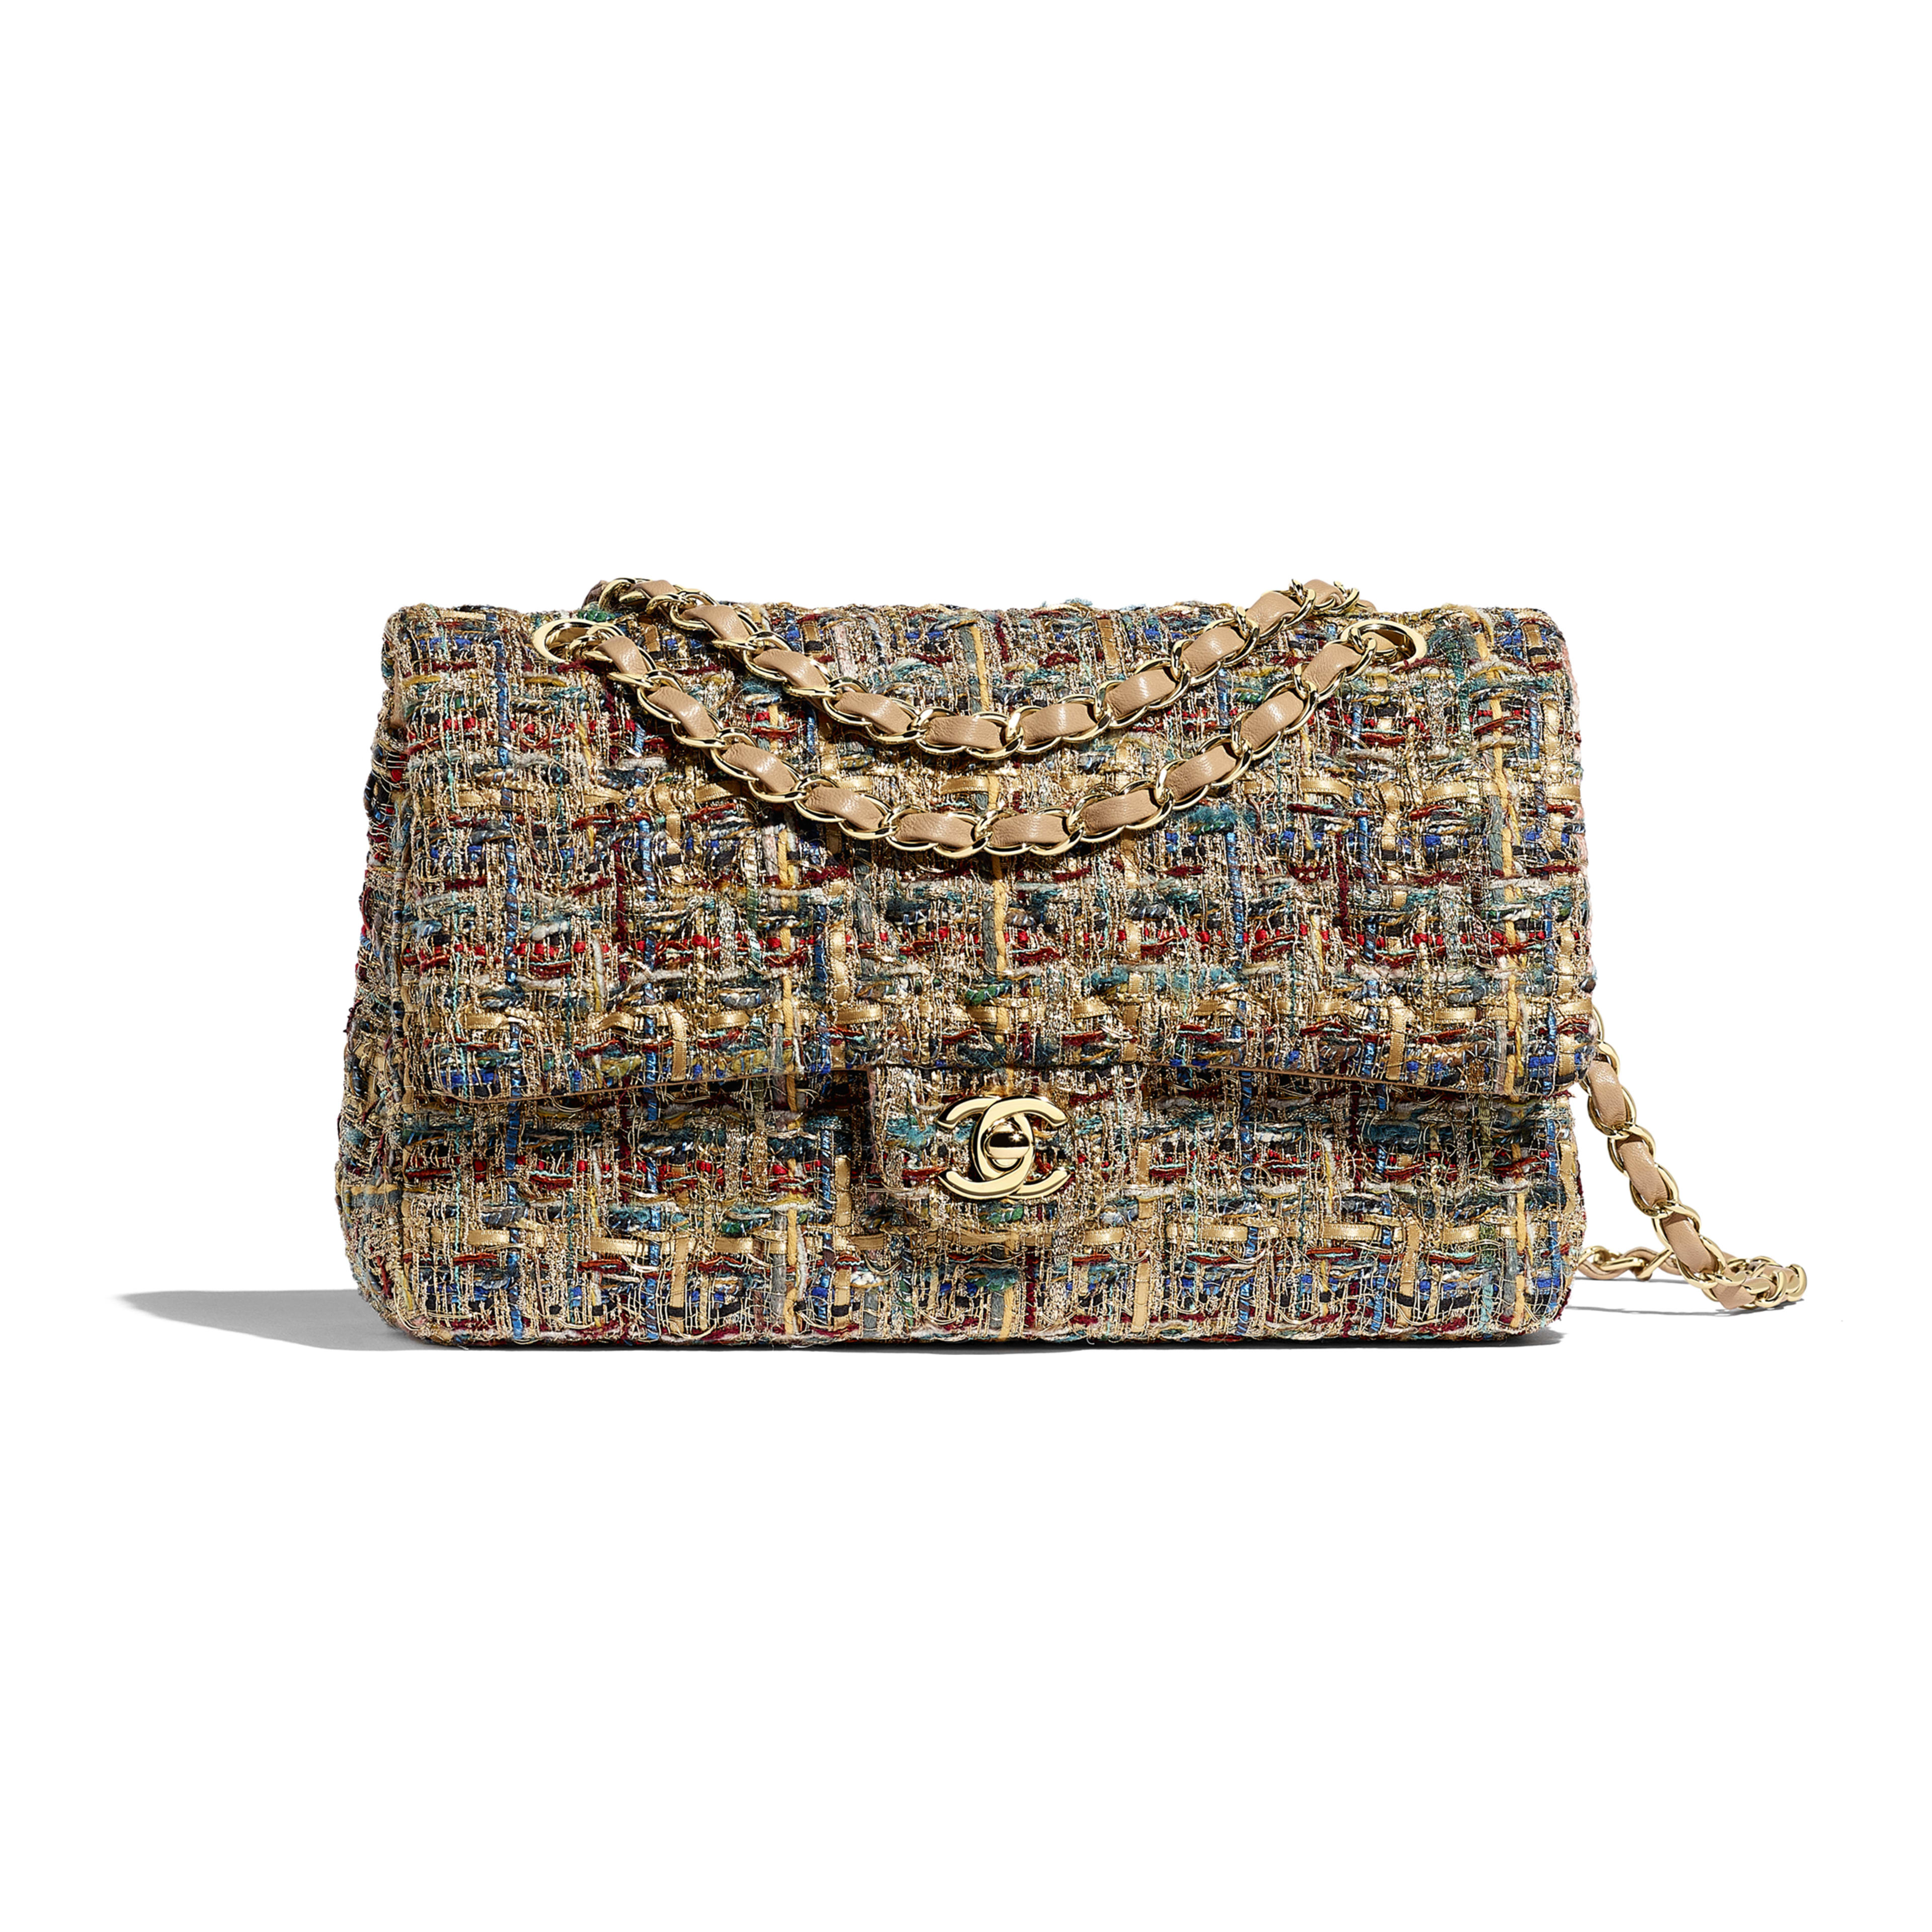 Classic Handbag - Gold, Blue & Green - Tweed & Gold-Tone Metal - Default view - see full sized version